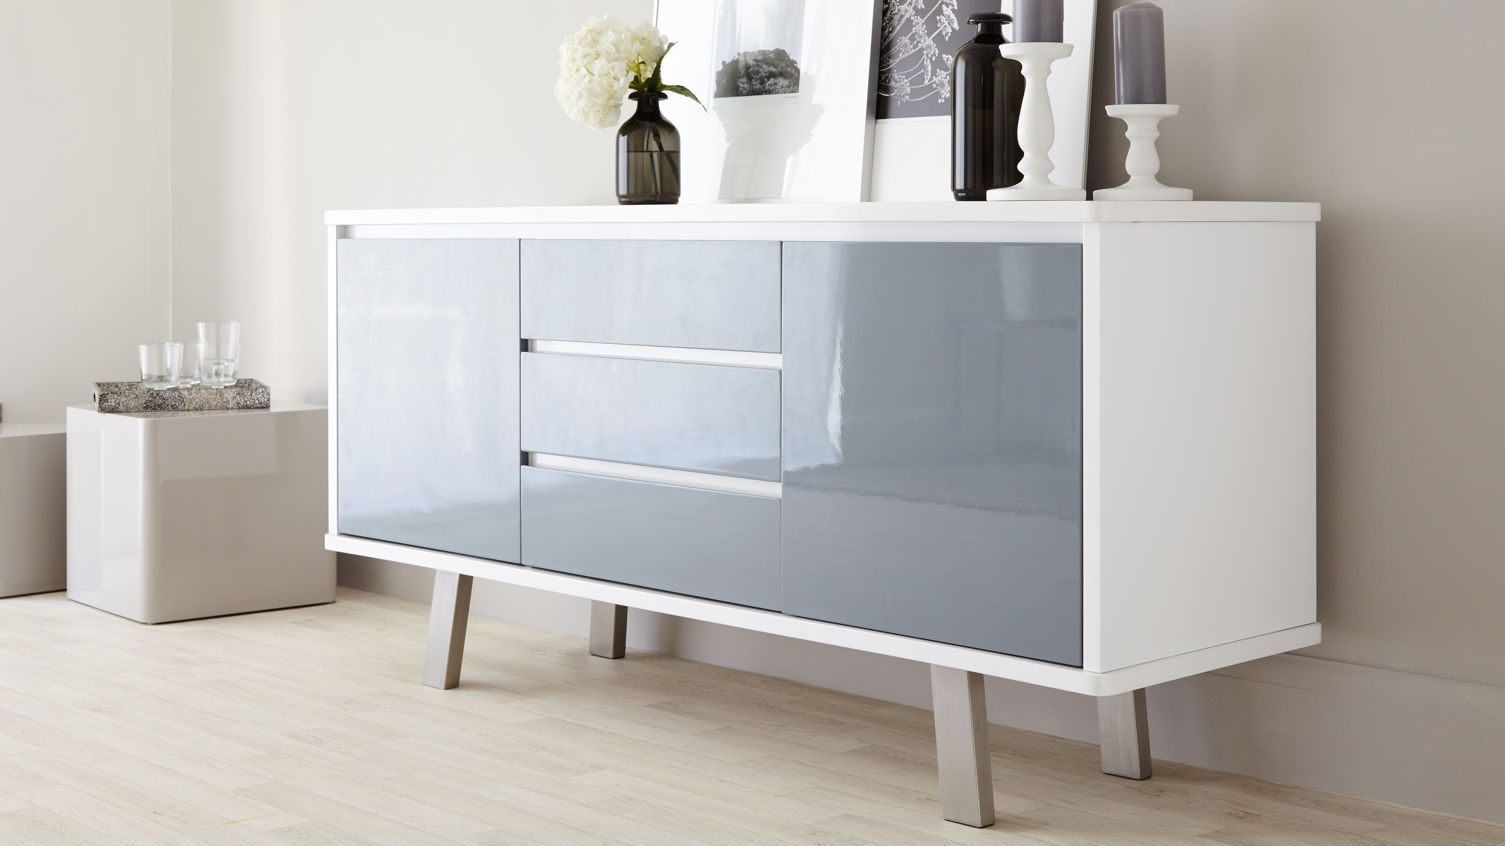 Assi White And Grey Gloss Sideboard | Danetti | Stylish throughout Deep Blue Fern Credenzas (Image 2 of 30)